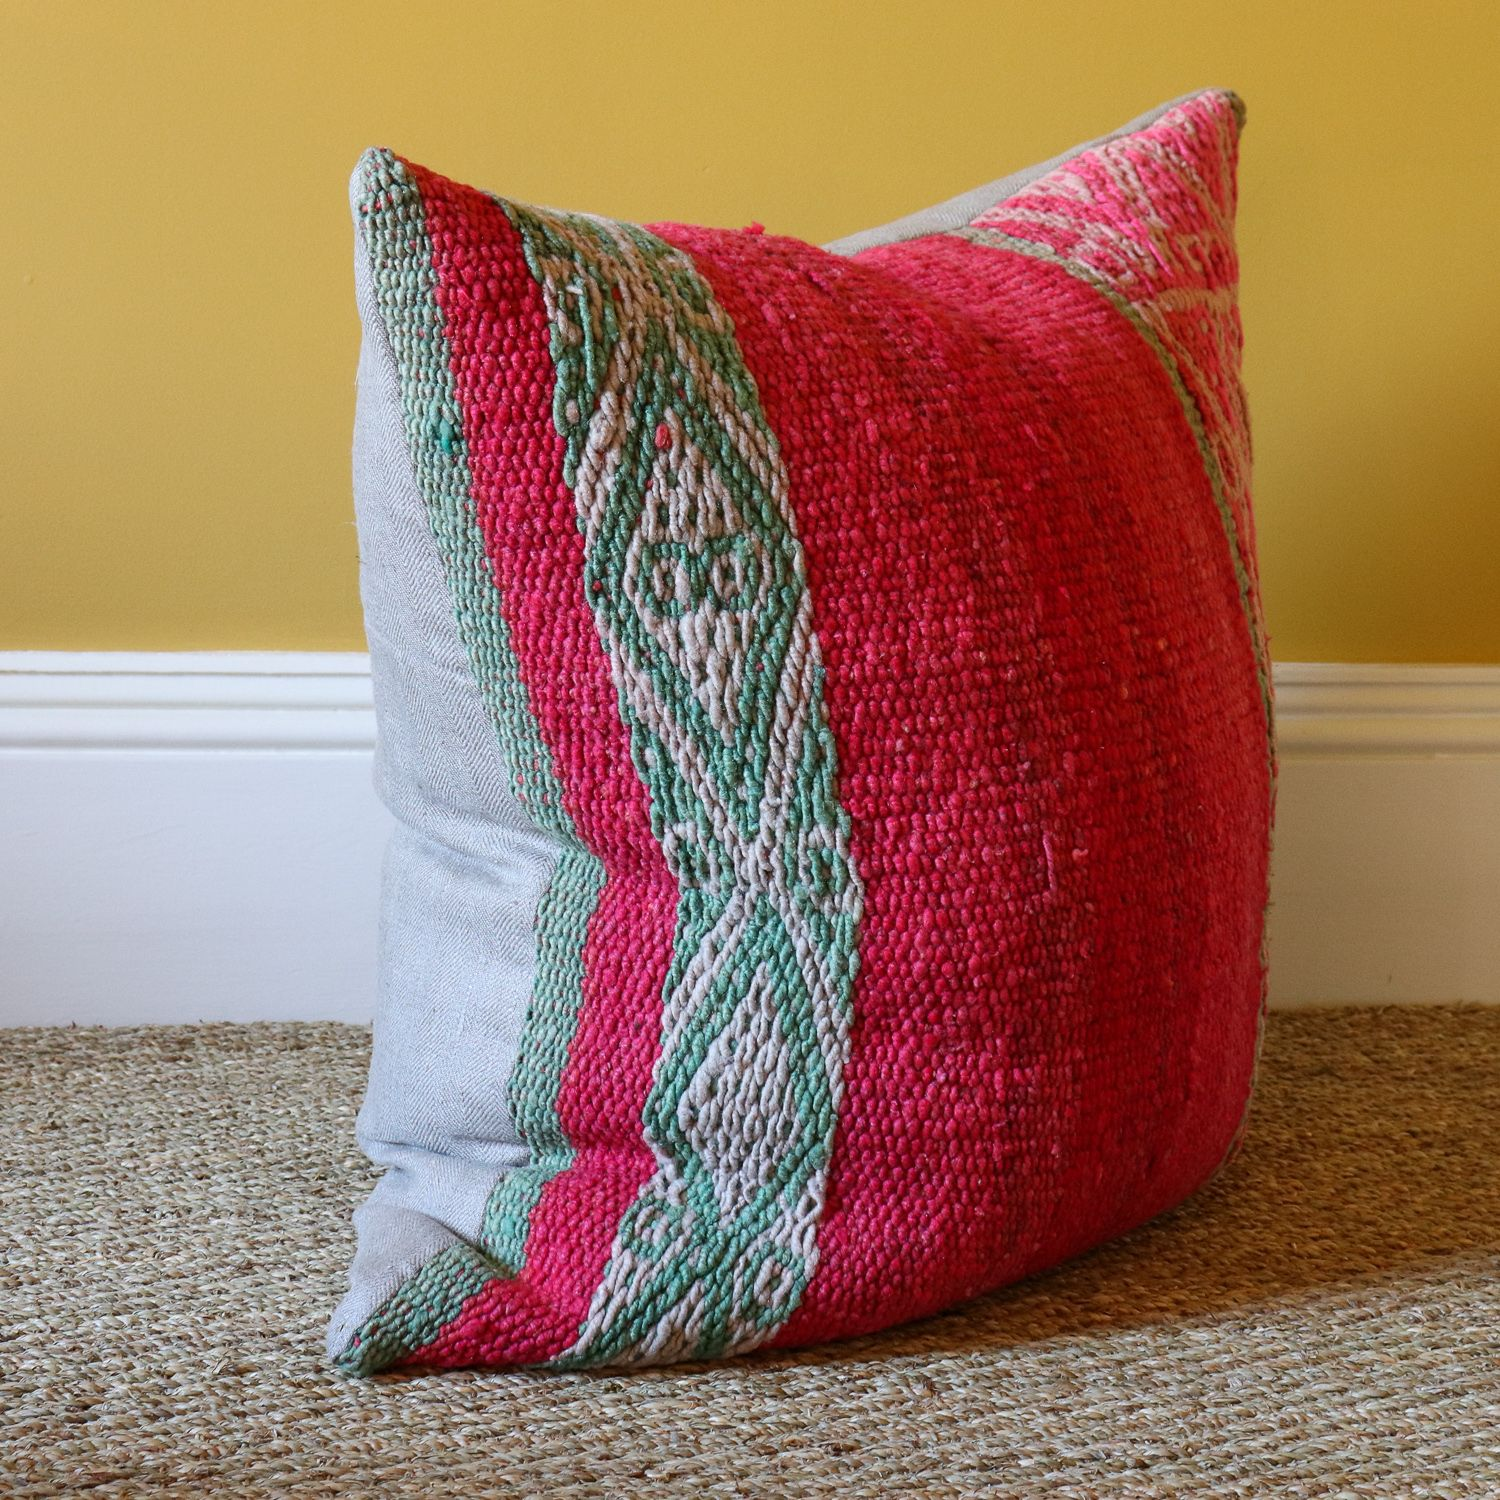 Large Feather Filled Frazada Floor Cushion Made From A Peruvian Blanket Fantastic Colours Handwoven Textiles And Floor Cushions Hand Woven Textiles Cushions